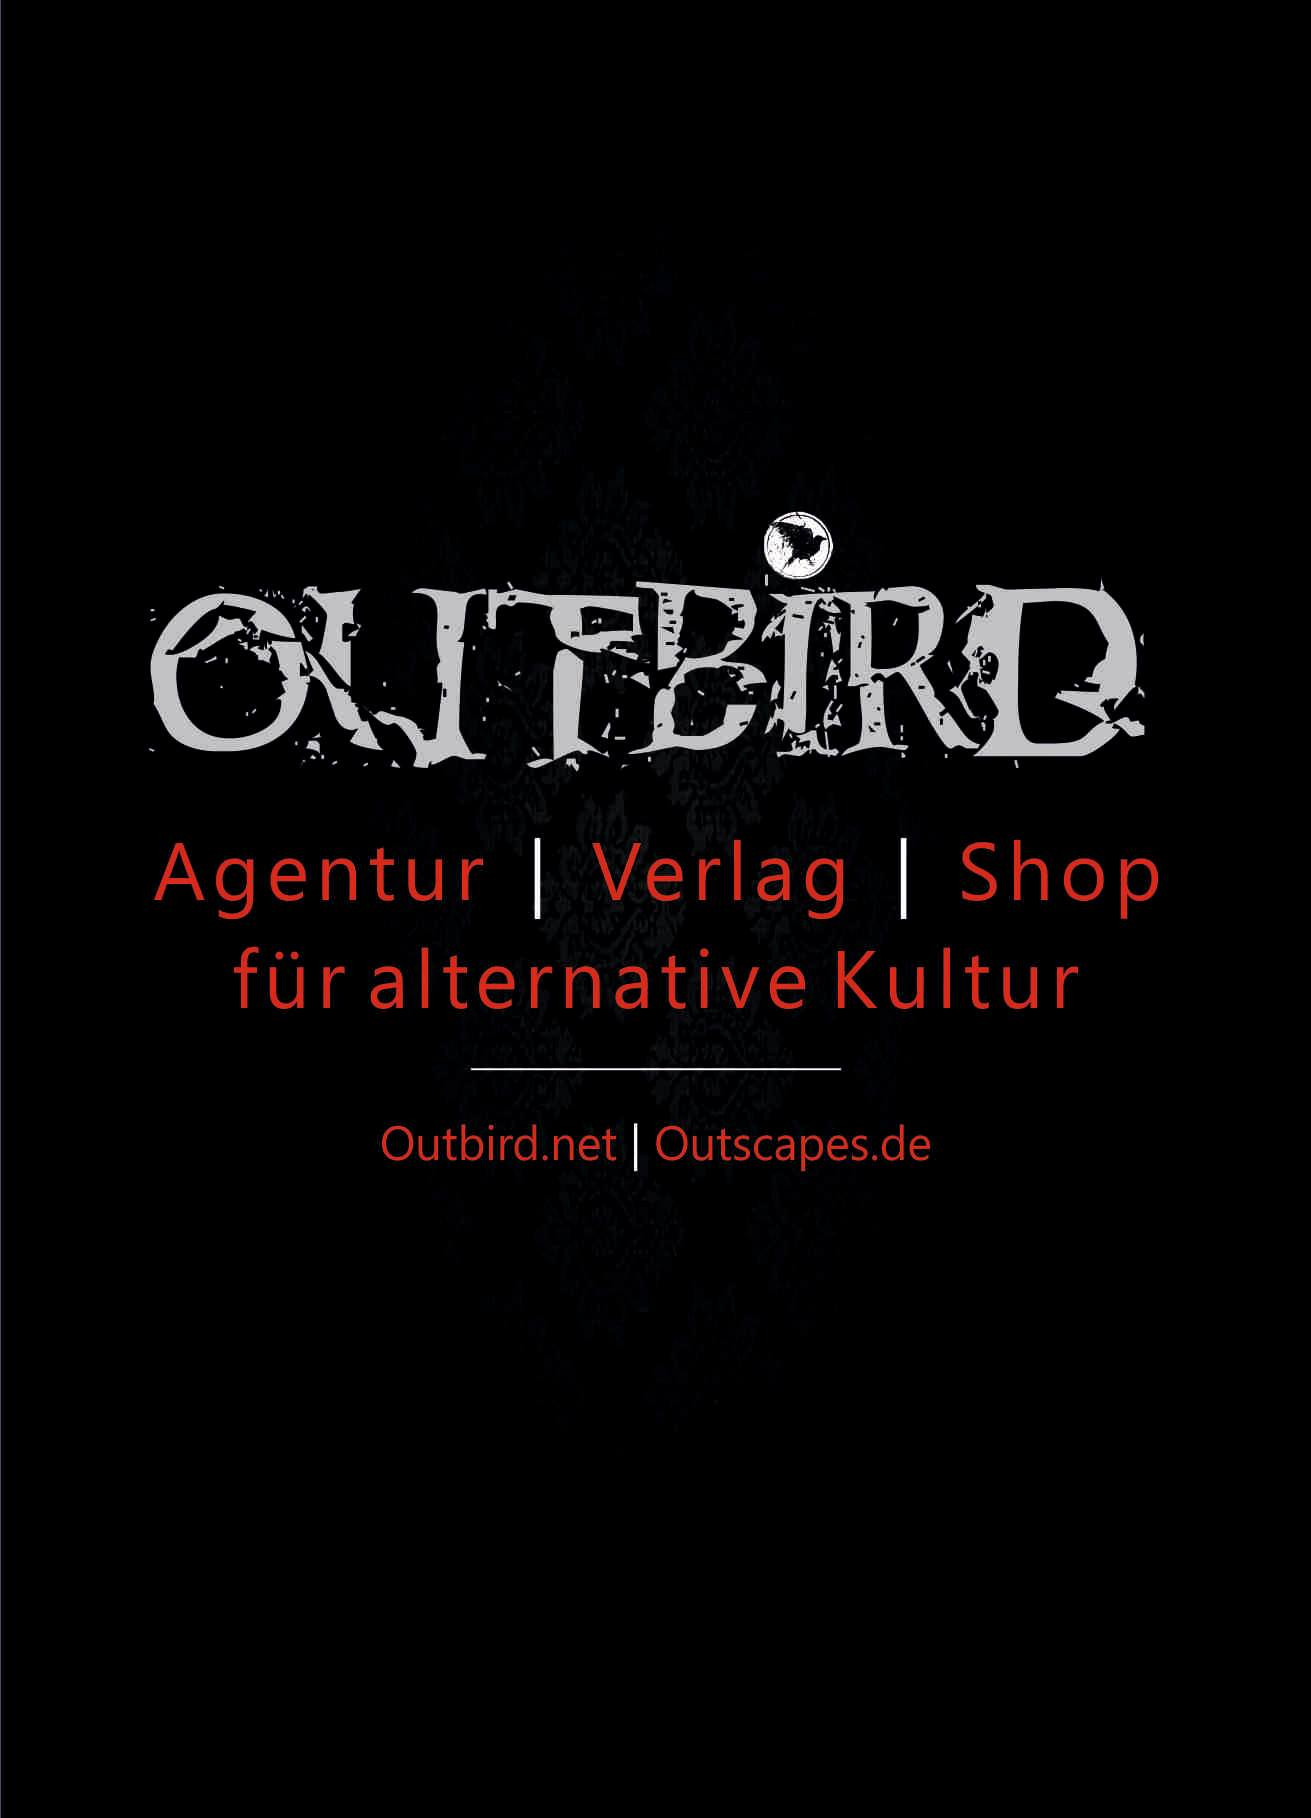 Outbird | Outscapes